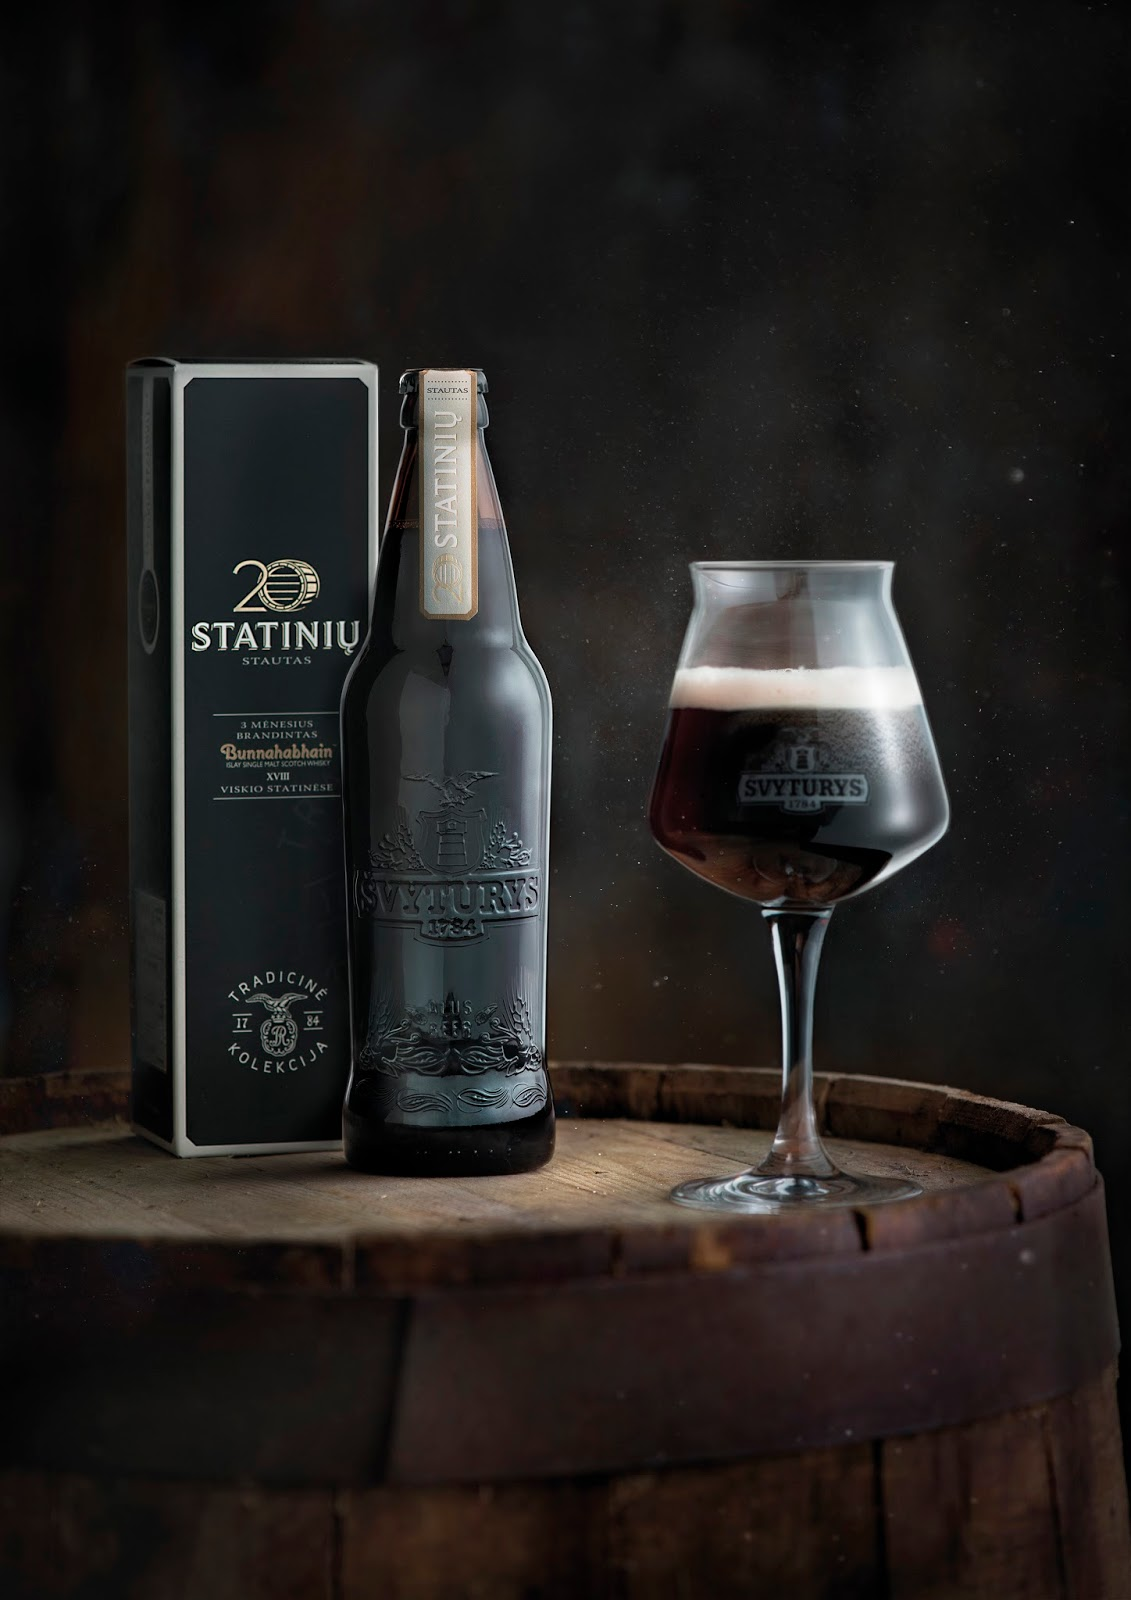 20 Barrels Limited Edition Beer On Packaging Of The World